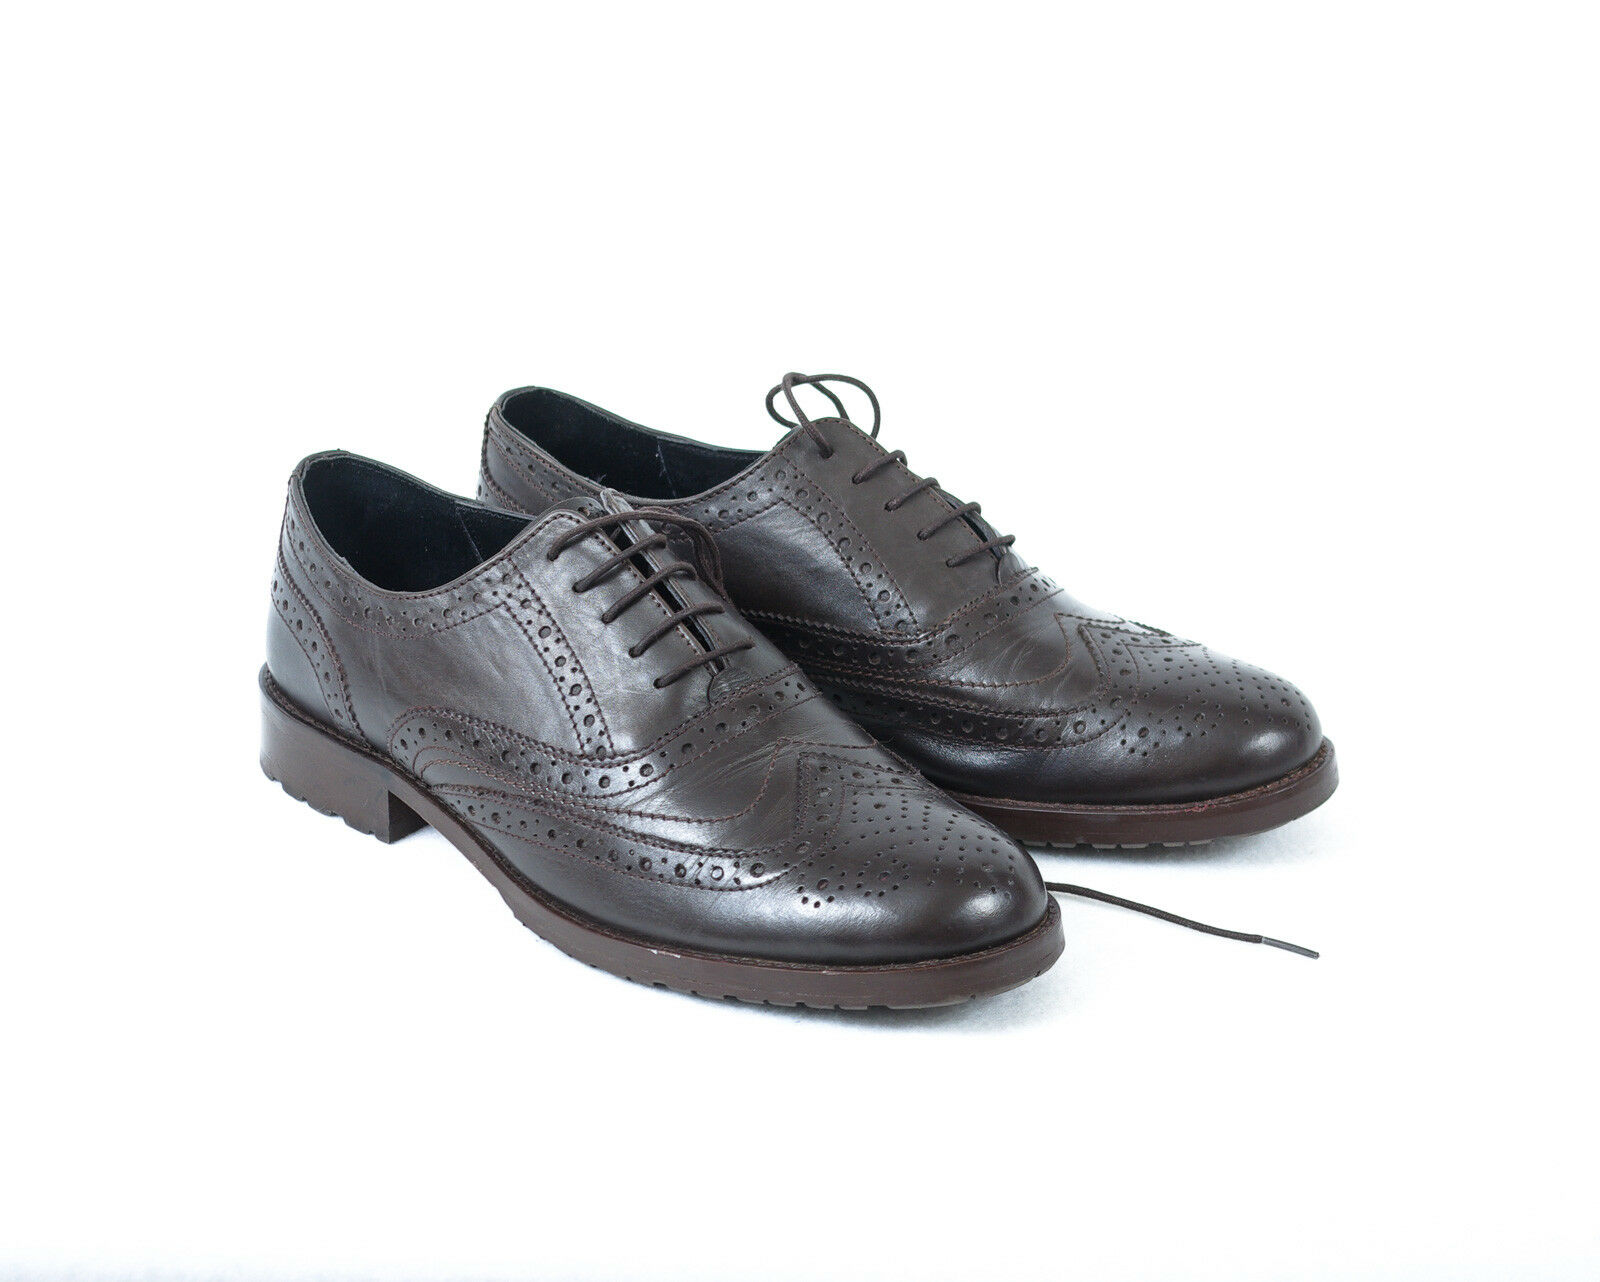 PENGUIN 100% LEATHER  FORMAL BROWN BROGUE SHOES